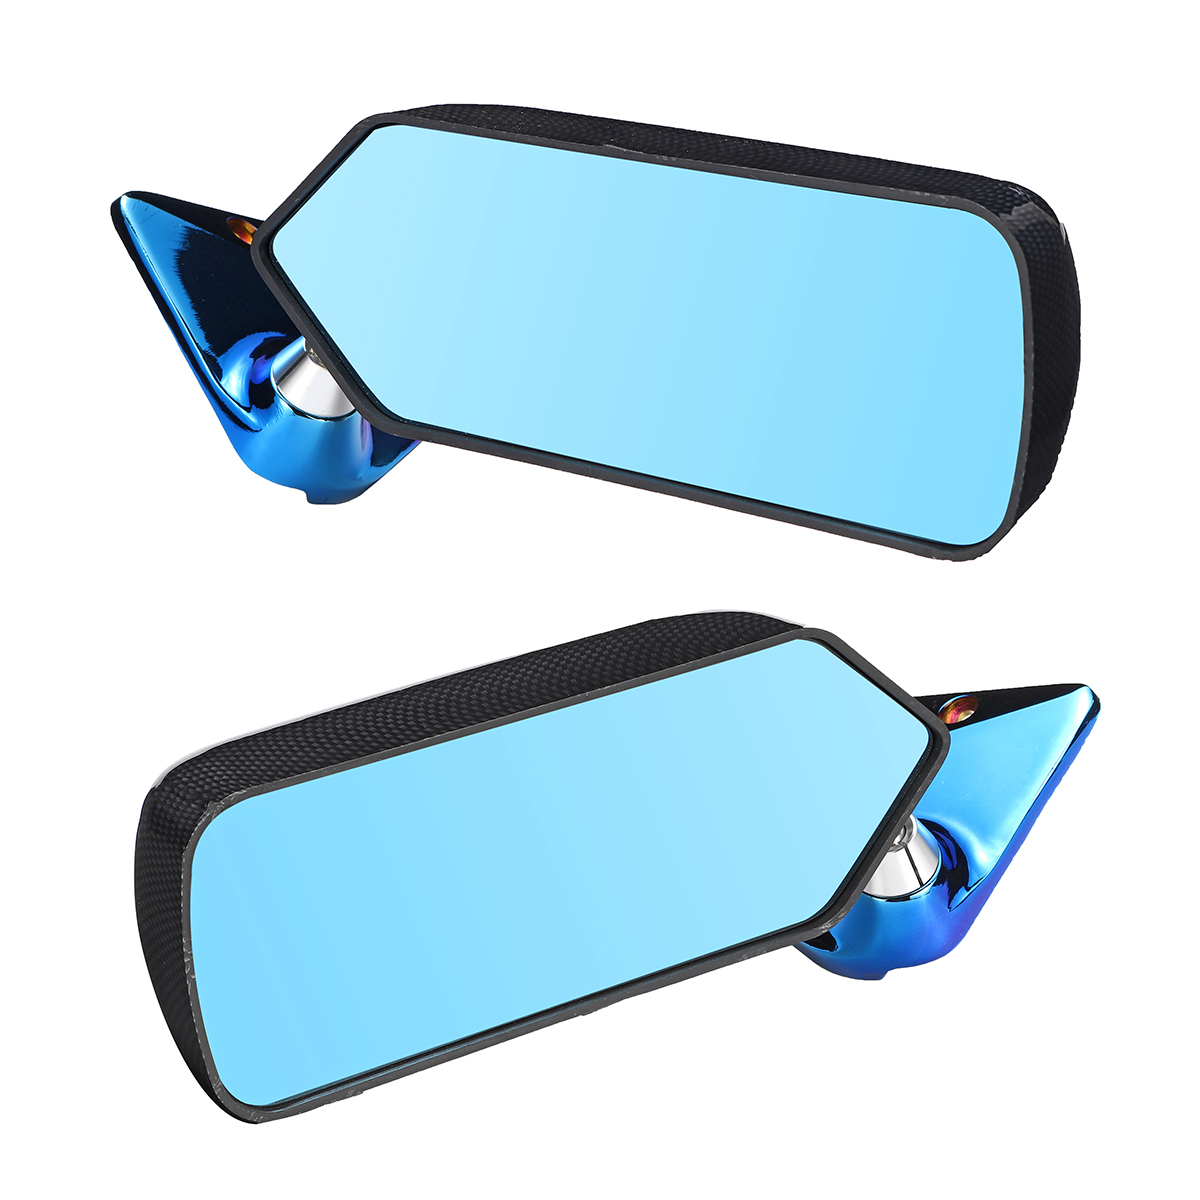 PEUGEOT BOXER 00-05 WING MIRROR GLASS BOTTOM WIDE ANGLE